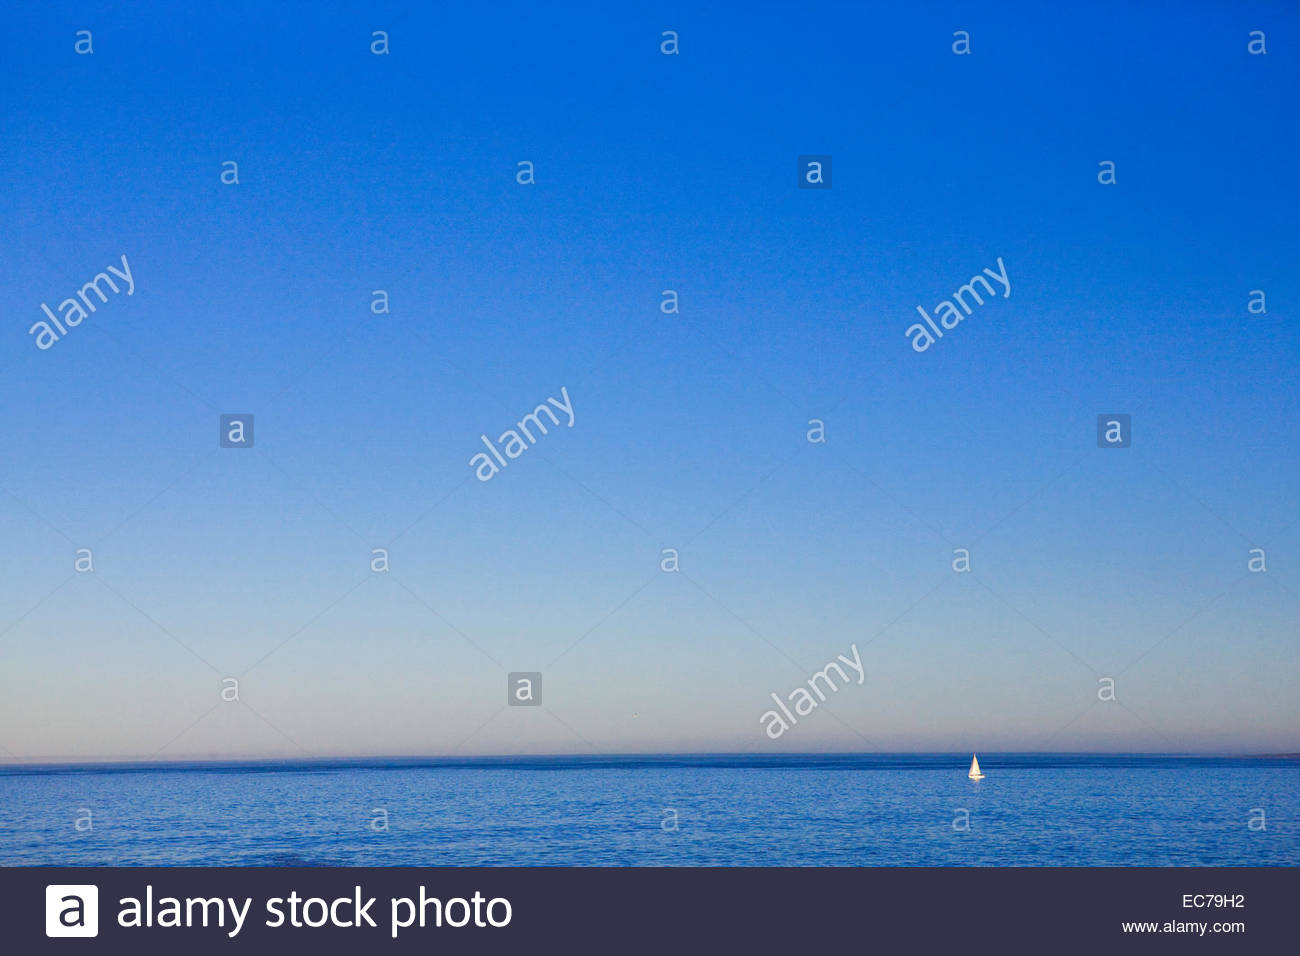 Sail boat in the distance at sea - Stock Image